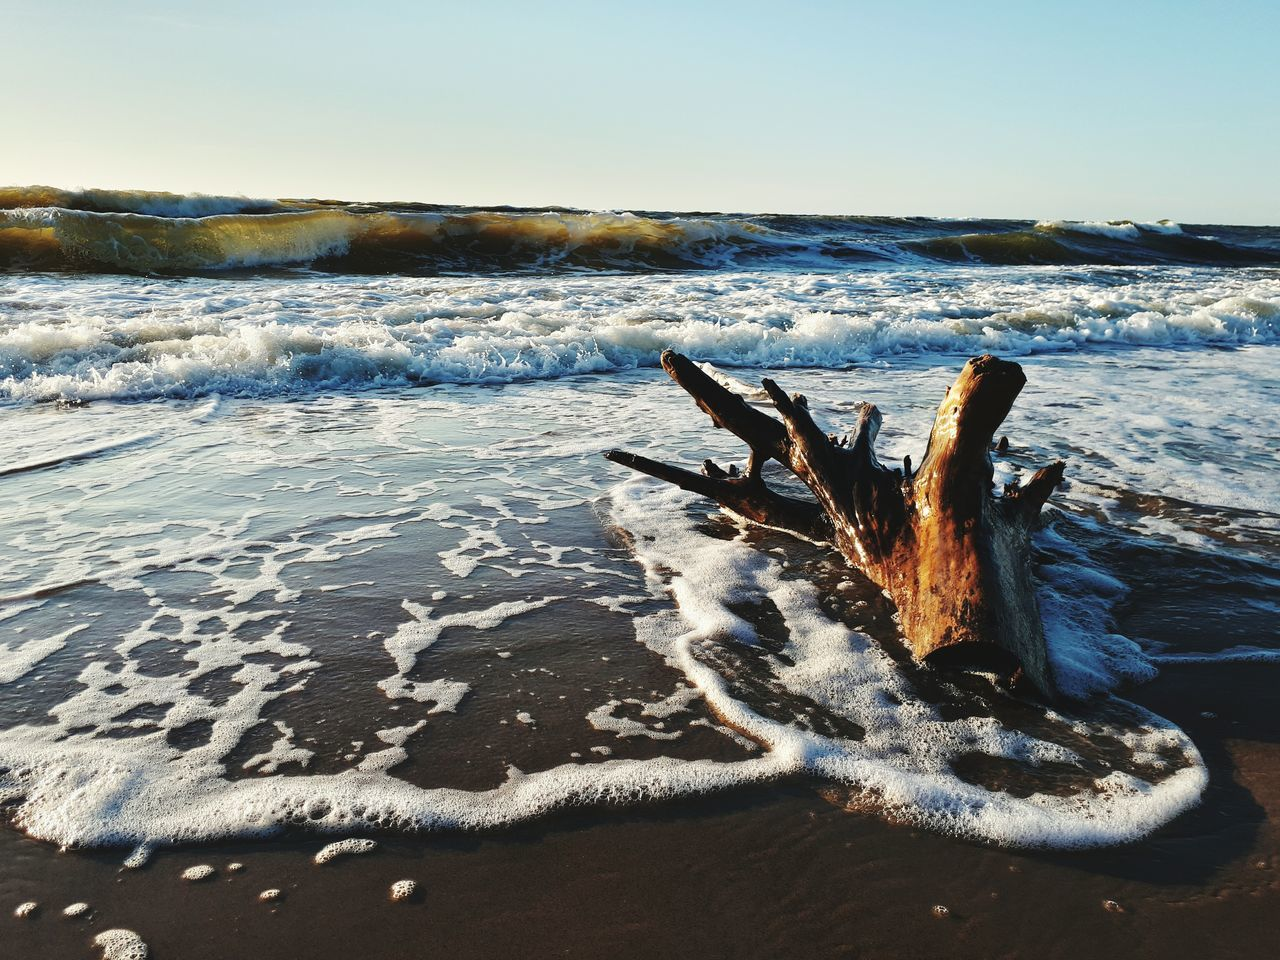 Sea beach & tree stump Beach Sea Sand Nature Outdoors Water Horizon Over Water Landscape Wave Sea Life Beauty In Nature Tree Stump In Water